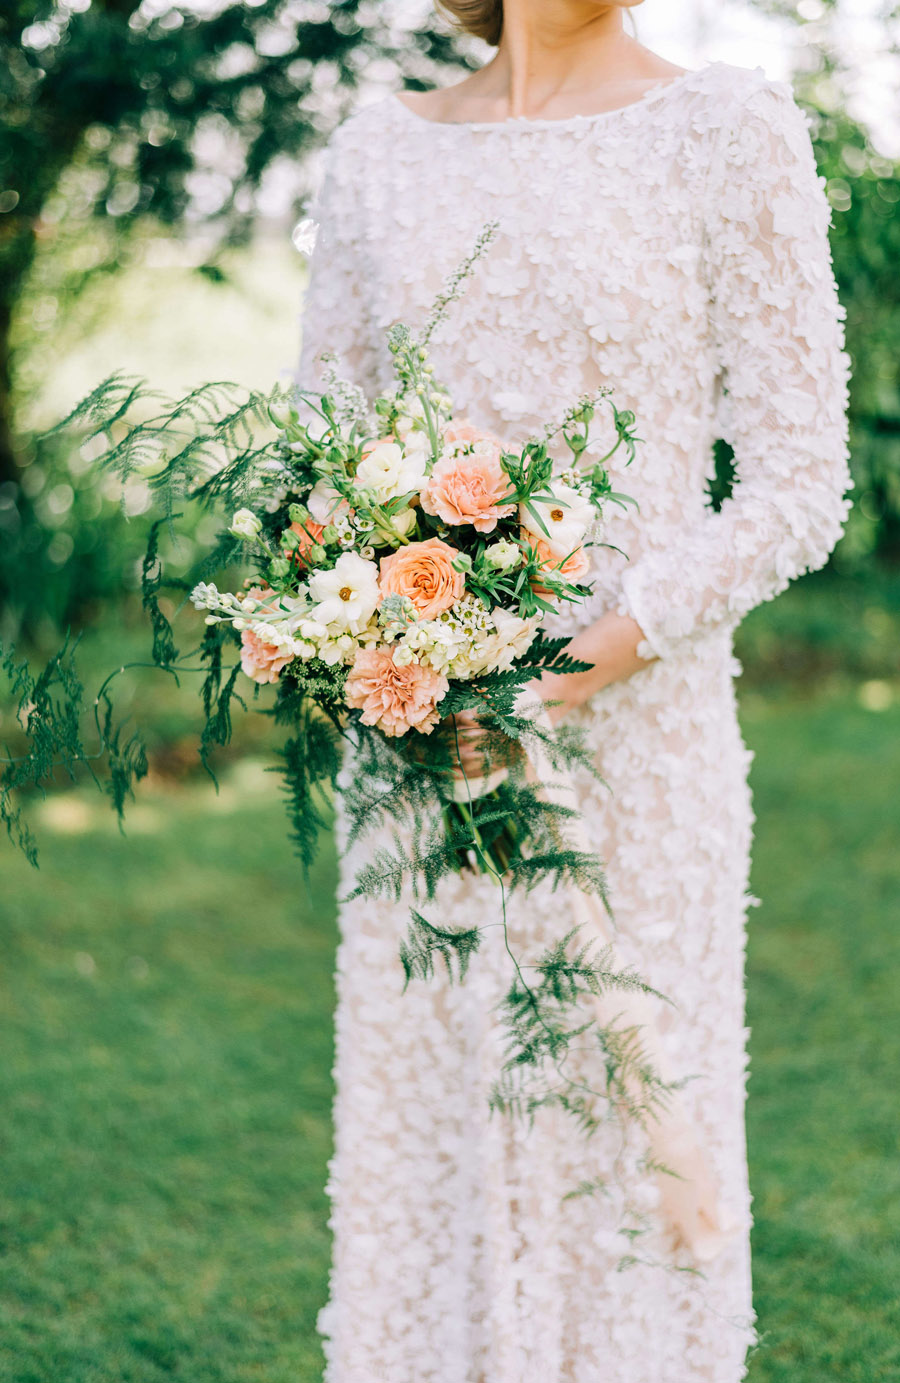 coral and neutral colour palette for a stunning wedding look with Corky and Prince, image credit Rachel Jane Photography (2)